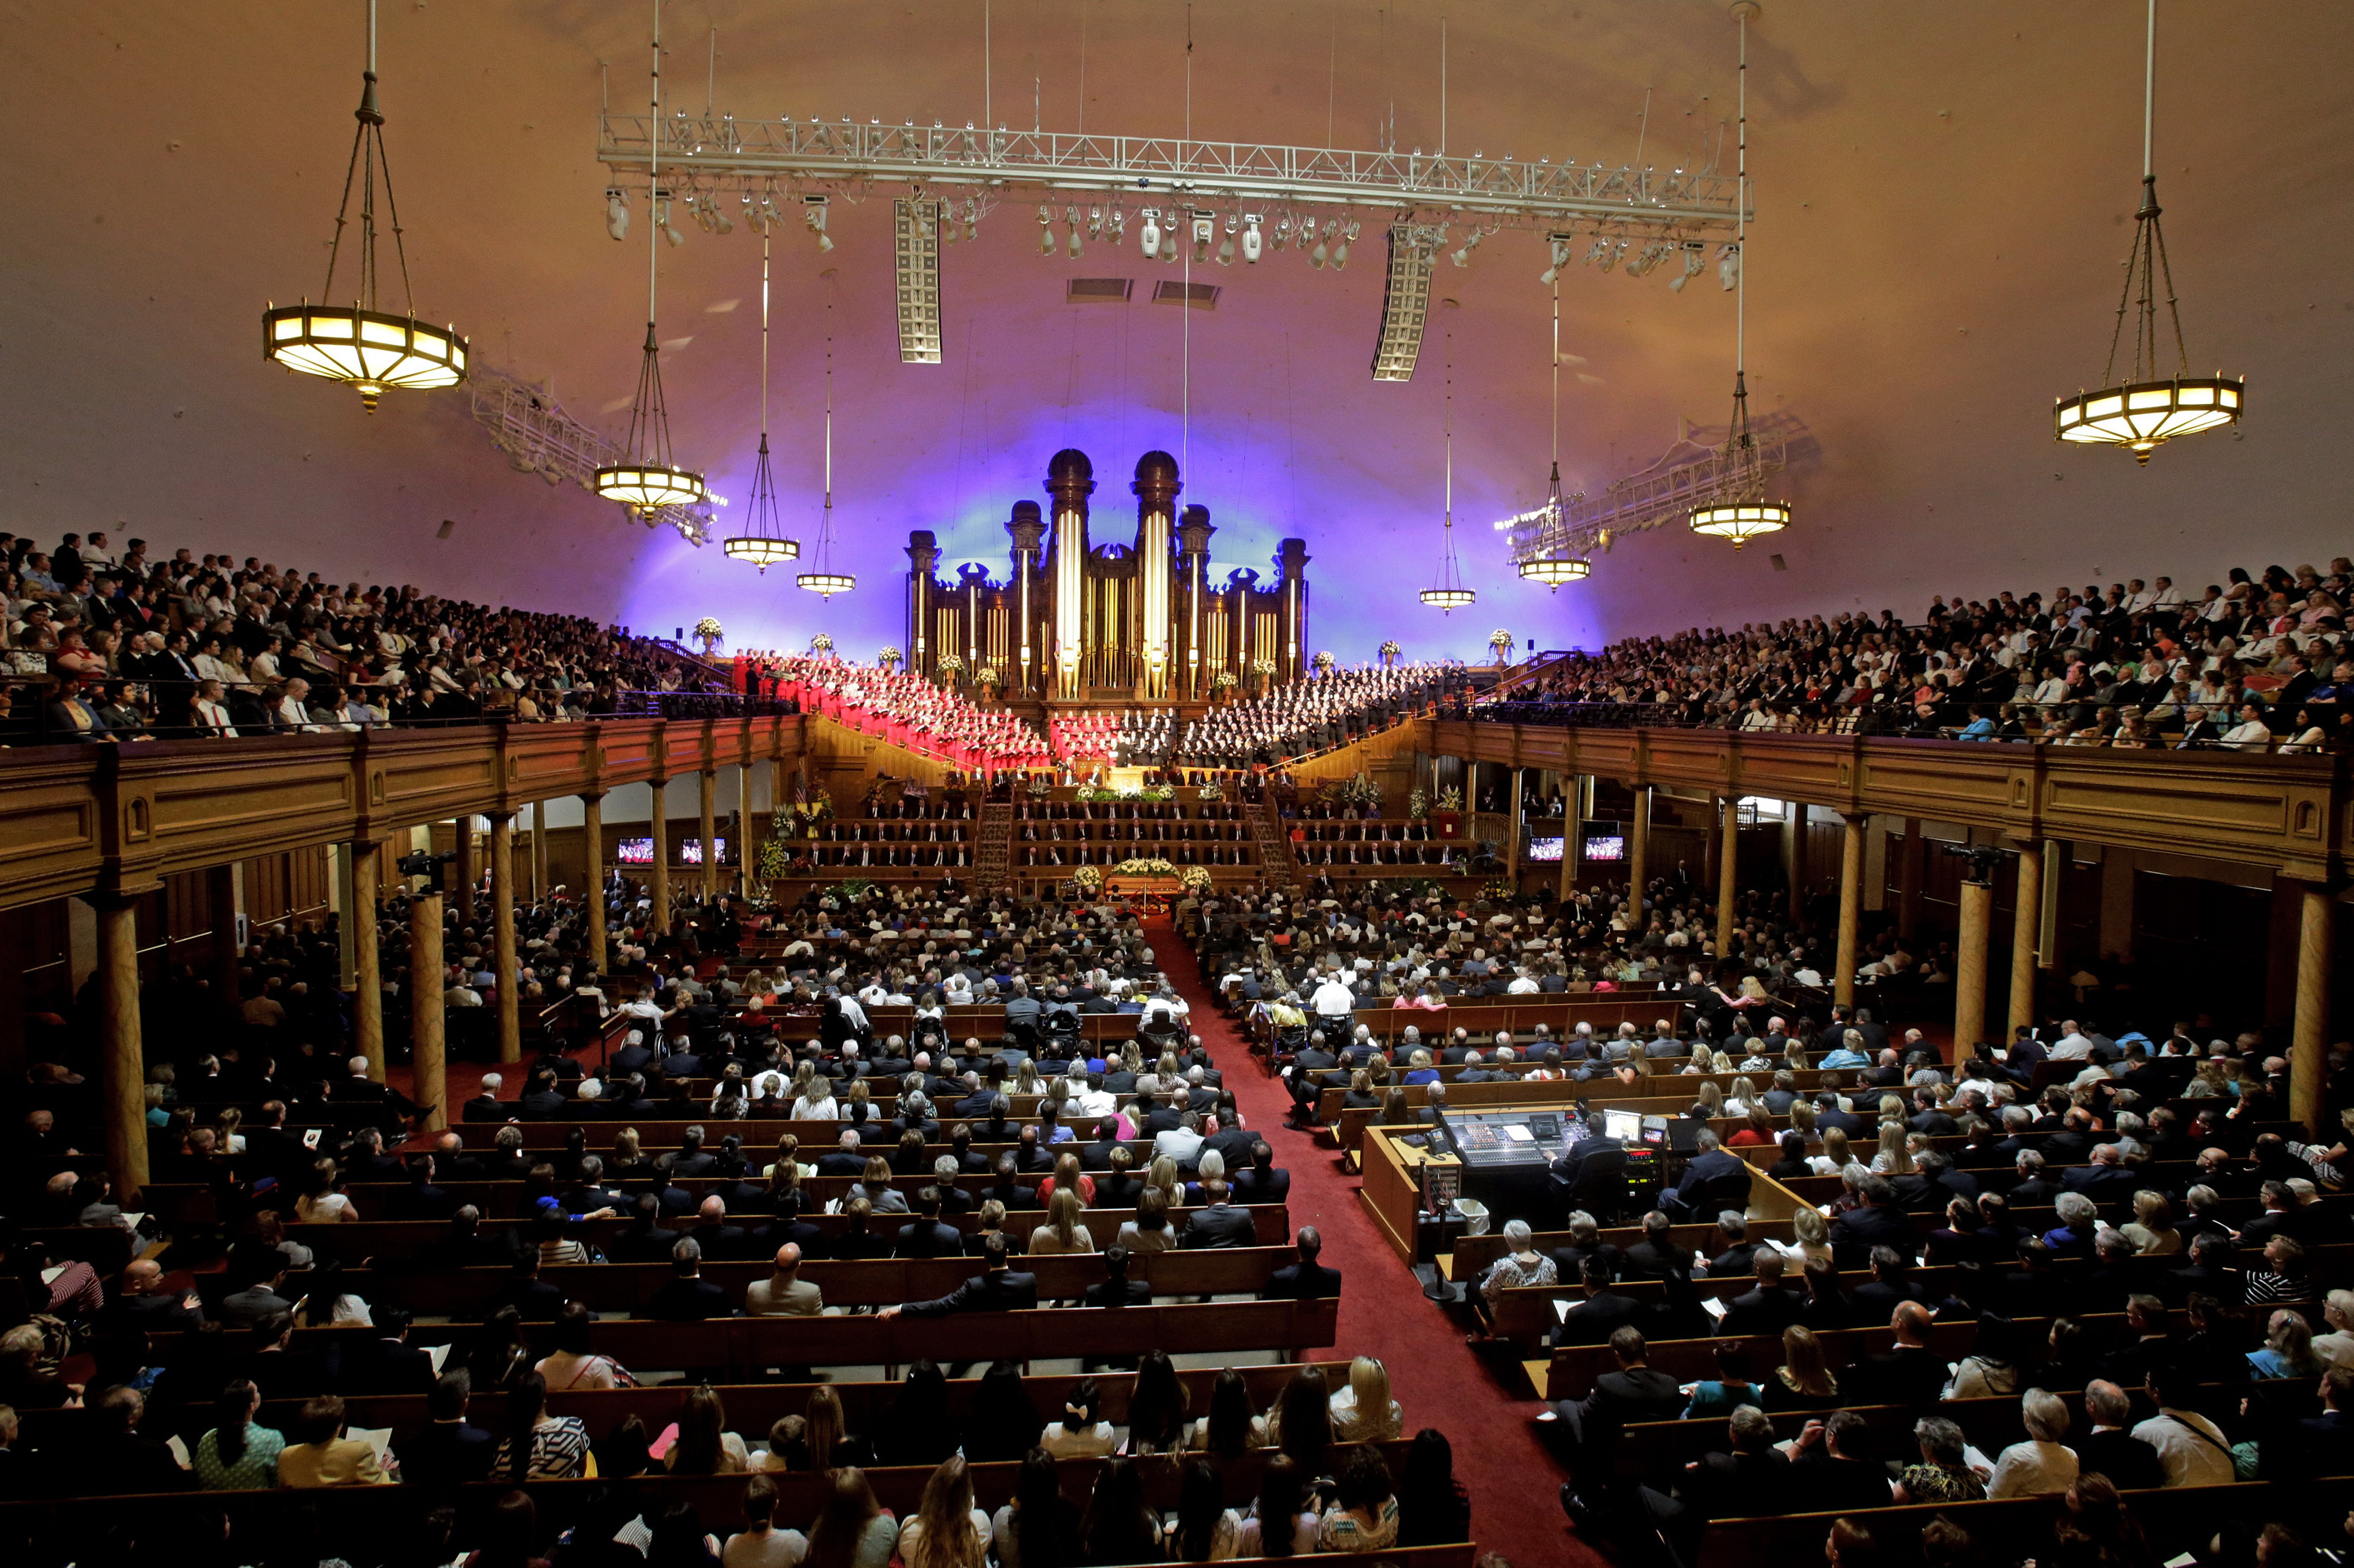 A public funeral is held for Mormon leader L. Tom Perry on June 5 at the Salt Lake Tabernacle in Salt Lake City, Utah. Perry was a member of The Church of Jesus Christ of Latter-day Saints' highest governing body, the Quorum of the Twelve Apostles. He died at the age of 92 from cancer. The recent deaths of several high-ranking church leaders are expected to prompt new appointments. Rick Bowmer/AP